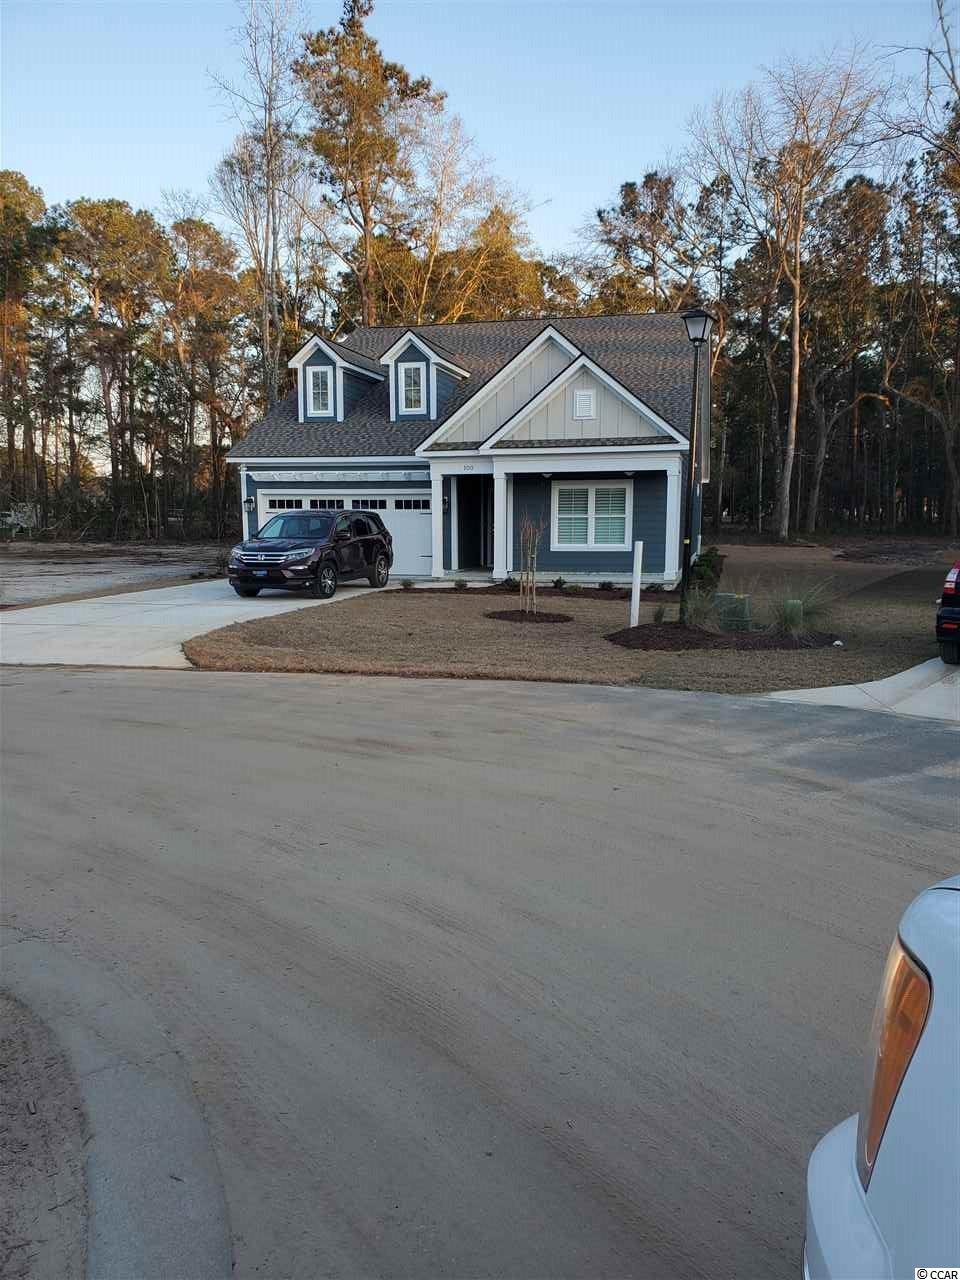 "This home is to be built .... The Simon Plan Located in ""Northwoods""  in Litchfield Plantation is a beautiful floor plan boasts  10' Ceilings in the Main Living areas with crown molding, Open Kitchen/living layout with Granite Countertops, tile back splash, Upgraded Stainless steel appliances, and large Pantry. The Master bathroom offers a separate tub and tiled Walk in Shower, Large Walk in Closet and his and hers sinks with Granite Tops. In the rear of the home you will find a larger covered rear porch overlooking the #3 Green at Willbrook Plantation Golf Course.  All of the homes in Northwoods will impress you with finish and upgrades as well as the quality of construction. Litchfield Plantation is unmatched in our area for its historic beauty. Enter the Avenue of Oaks, and you will immediately feel swept back in time. Northwoods is a brand new neighborhood located within this private and gated community that offers all of the amenities that Litchfield Plantation includes. This is a rare opportunity to own a home in the truly exquisite Litchfield Plantation community in Pawleys Island."